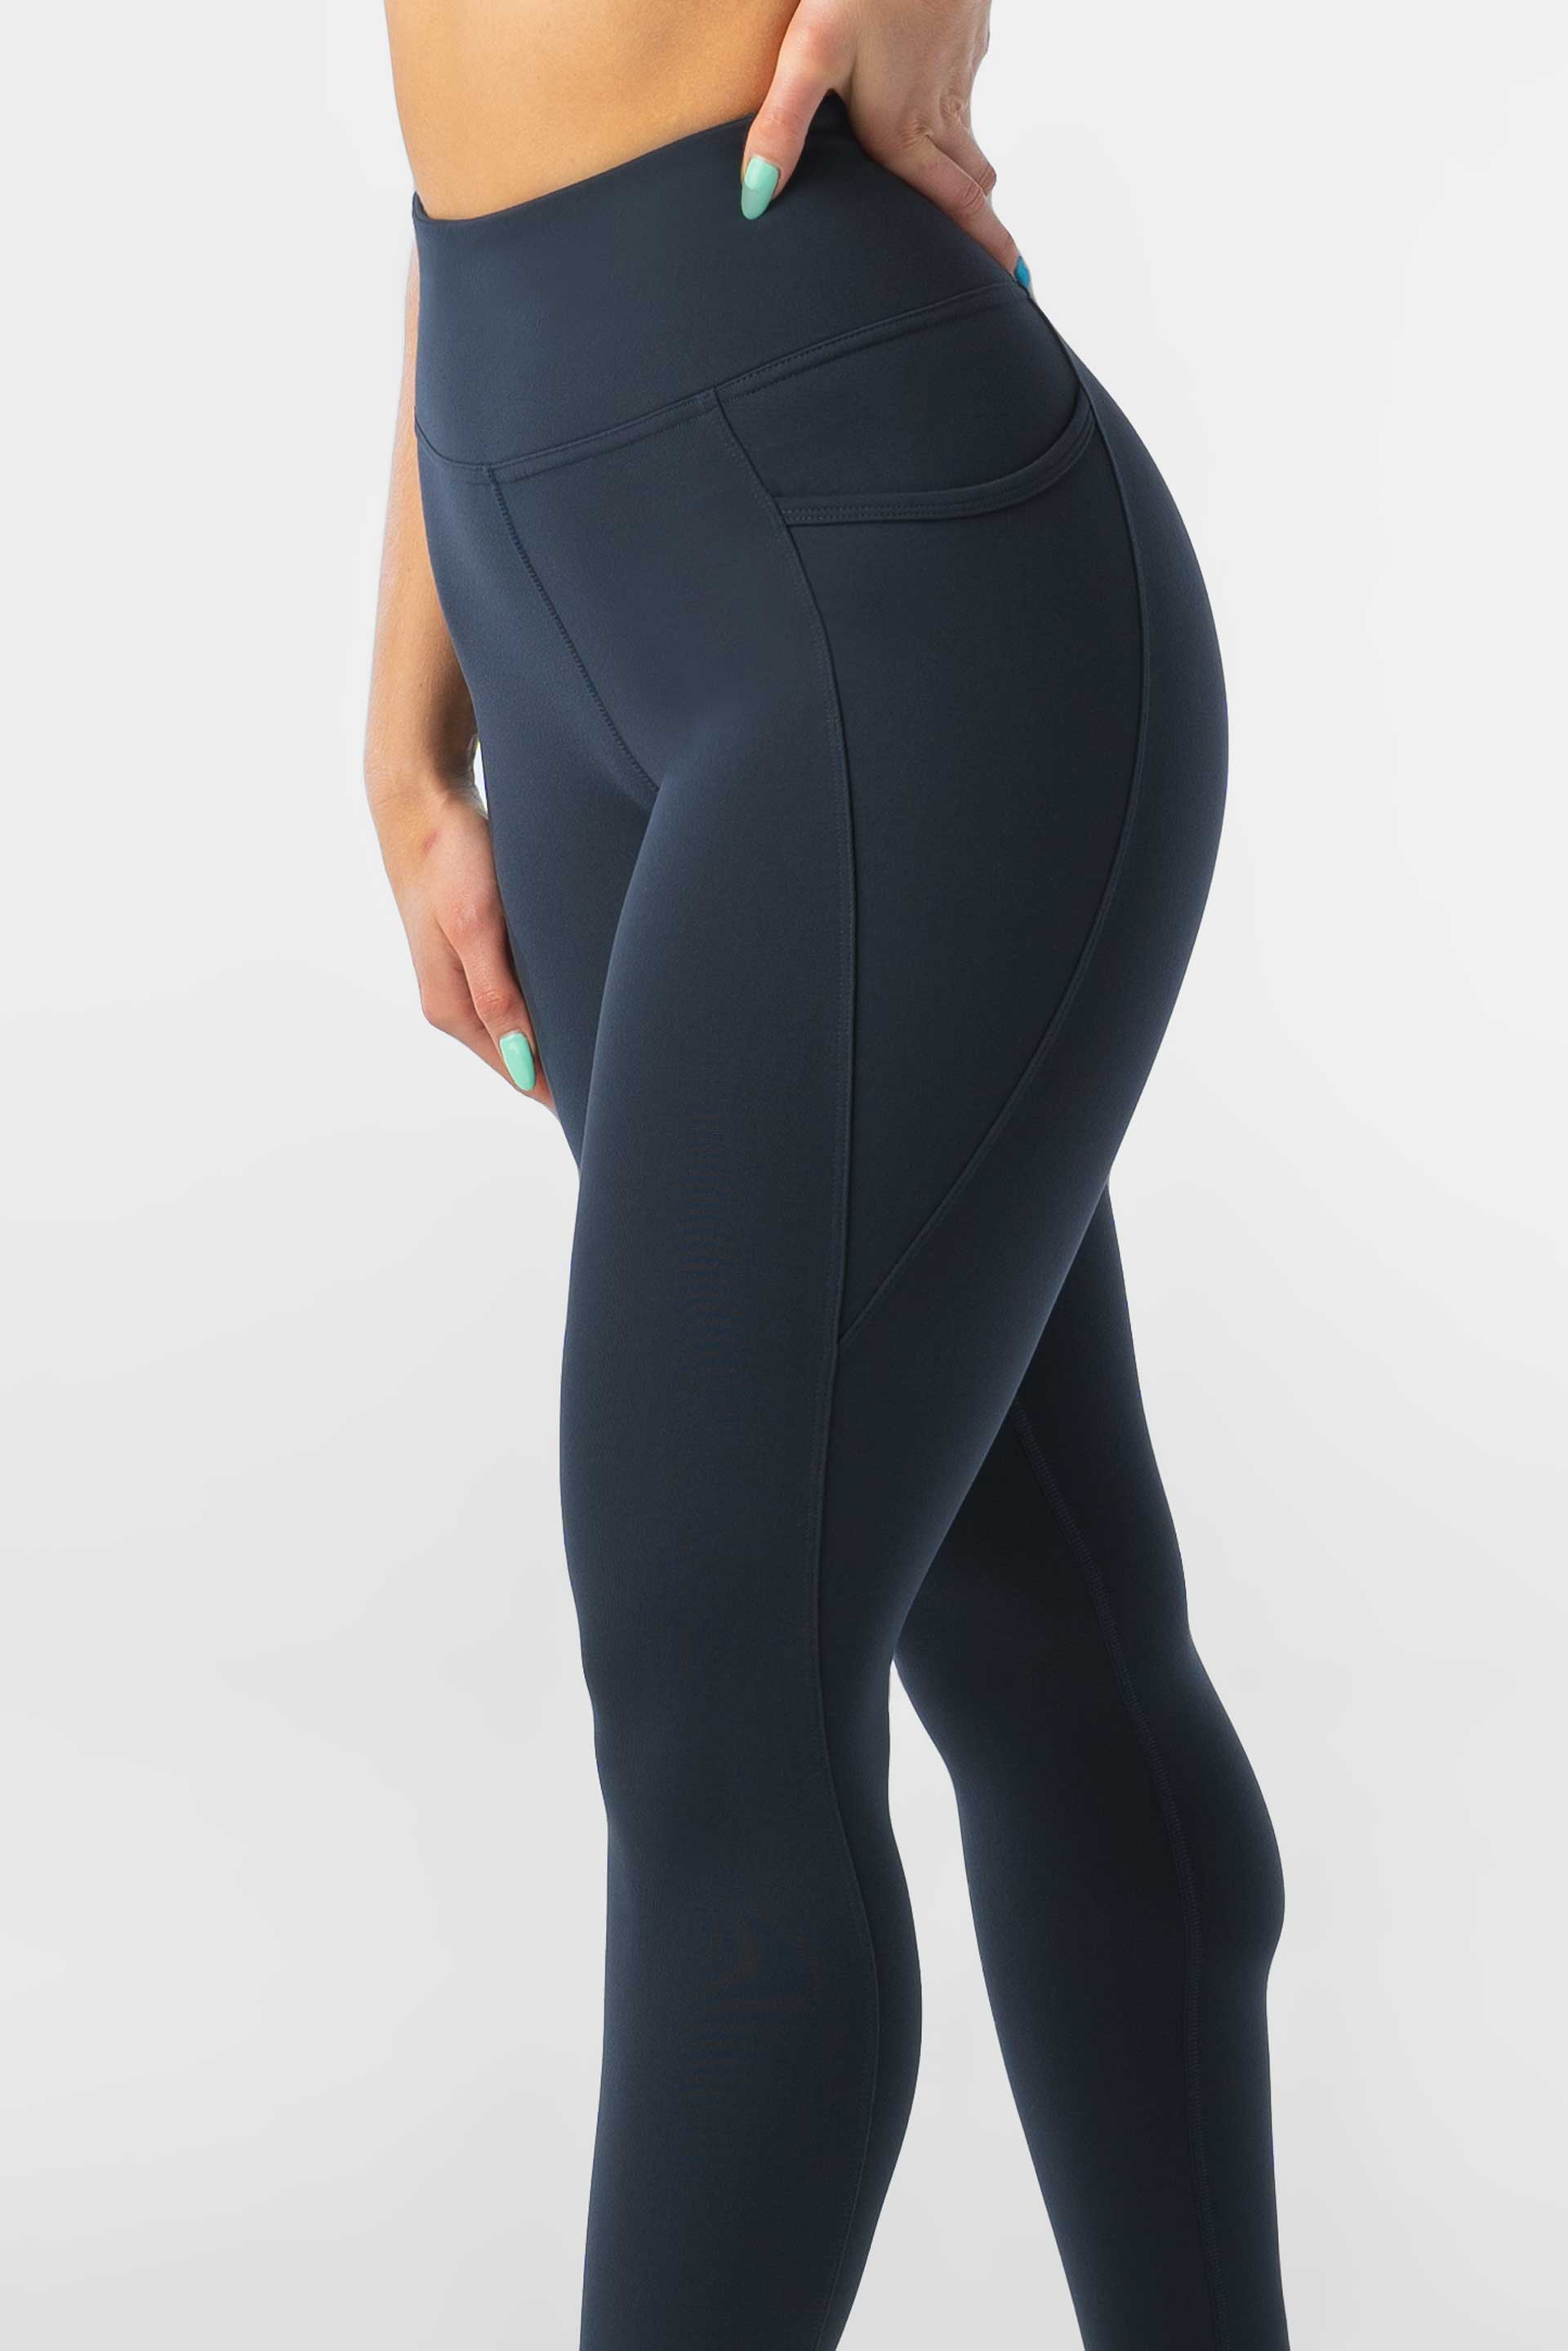 HIGH WAISTED SIDE POCKET F/L TIGHT - NAVY